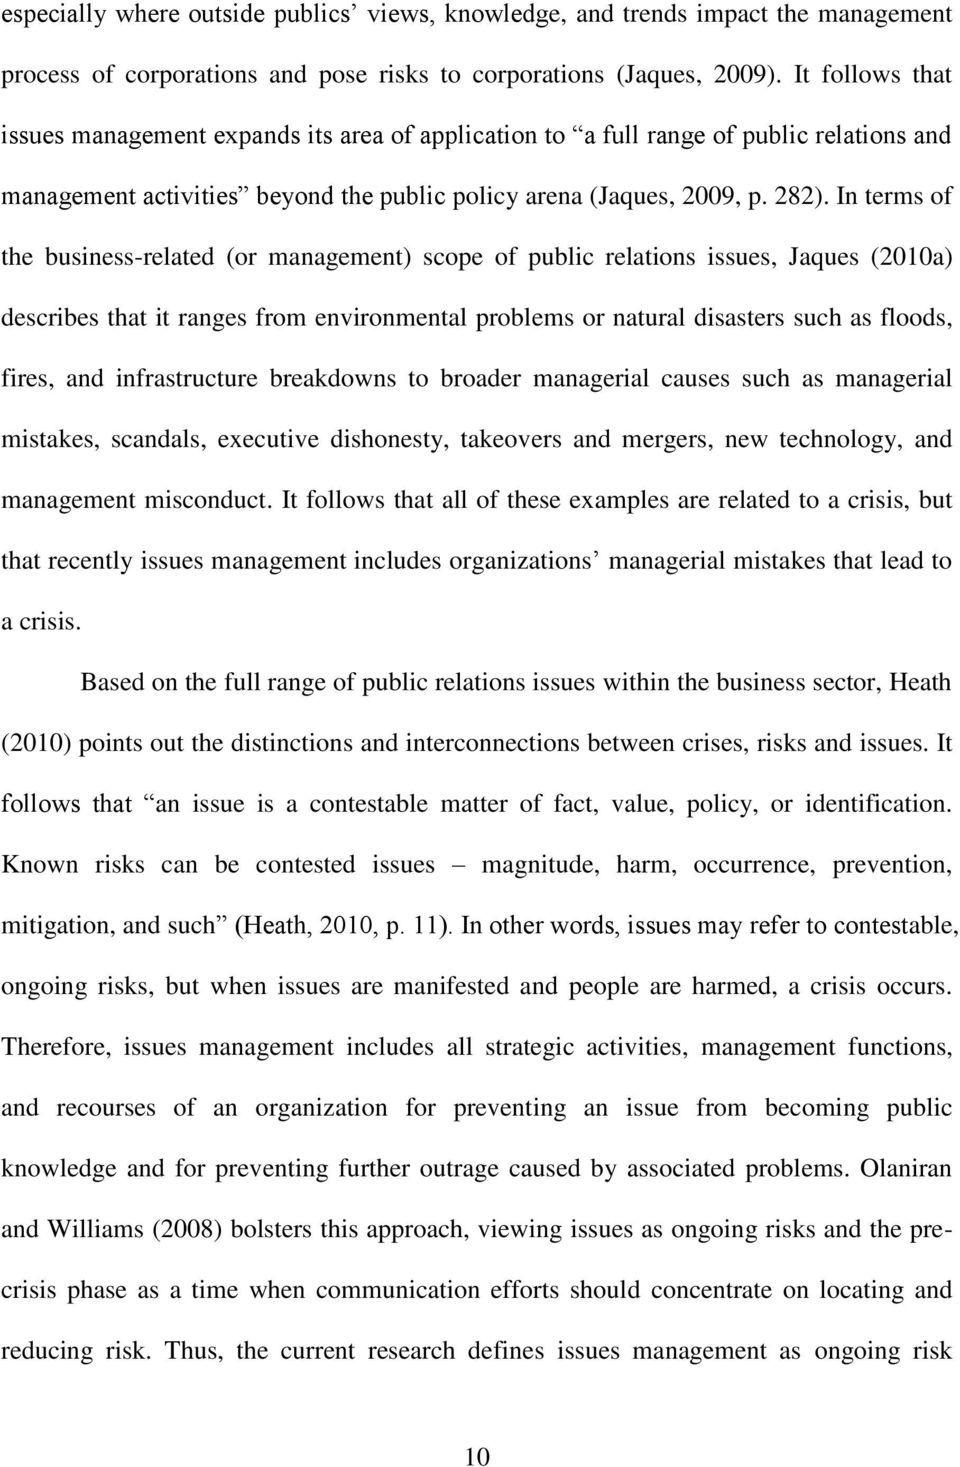 In terms of the business-related (or management) scope of public relations issues, Jaques (2010a) describes that it ranges from environmental problems or natural disasters such as floods, fires, and